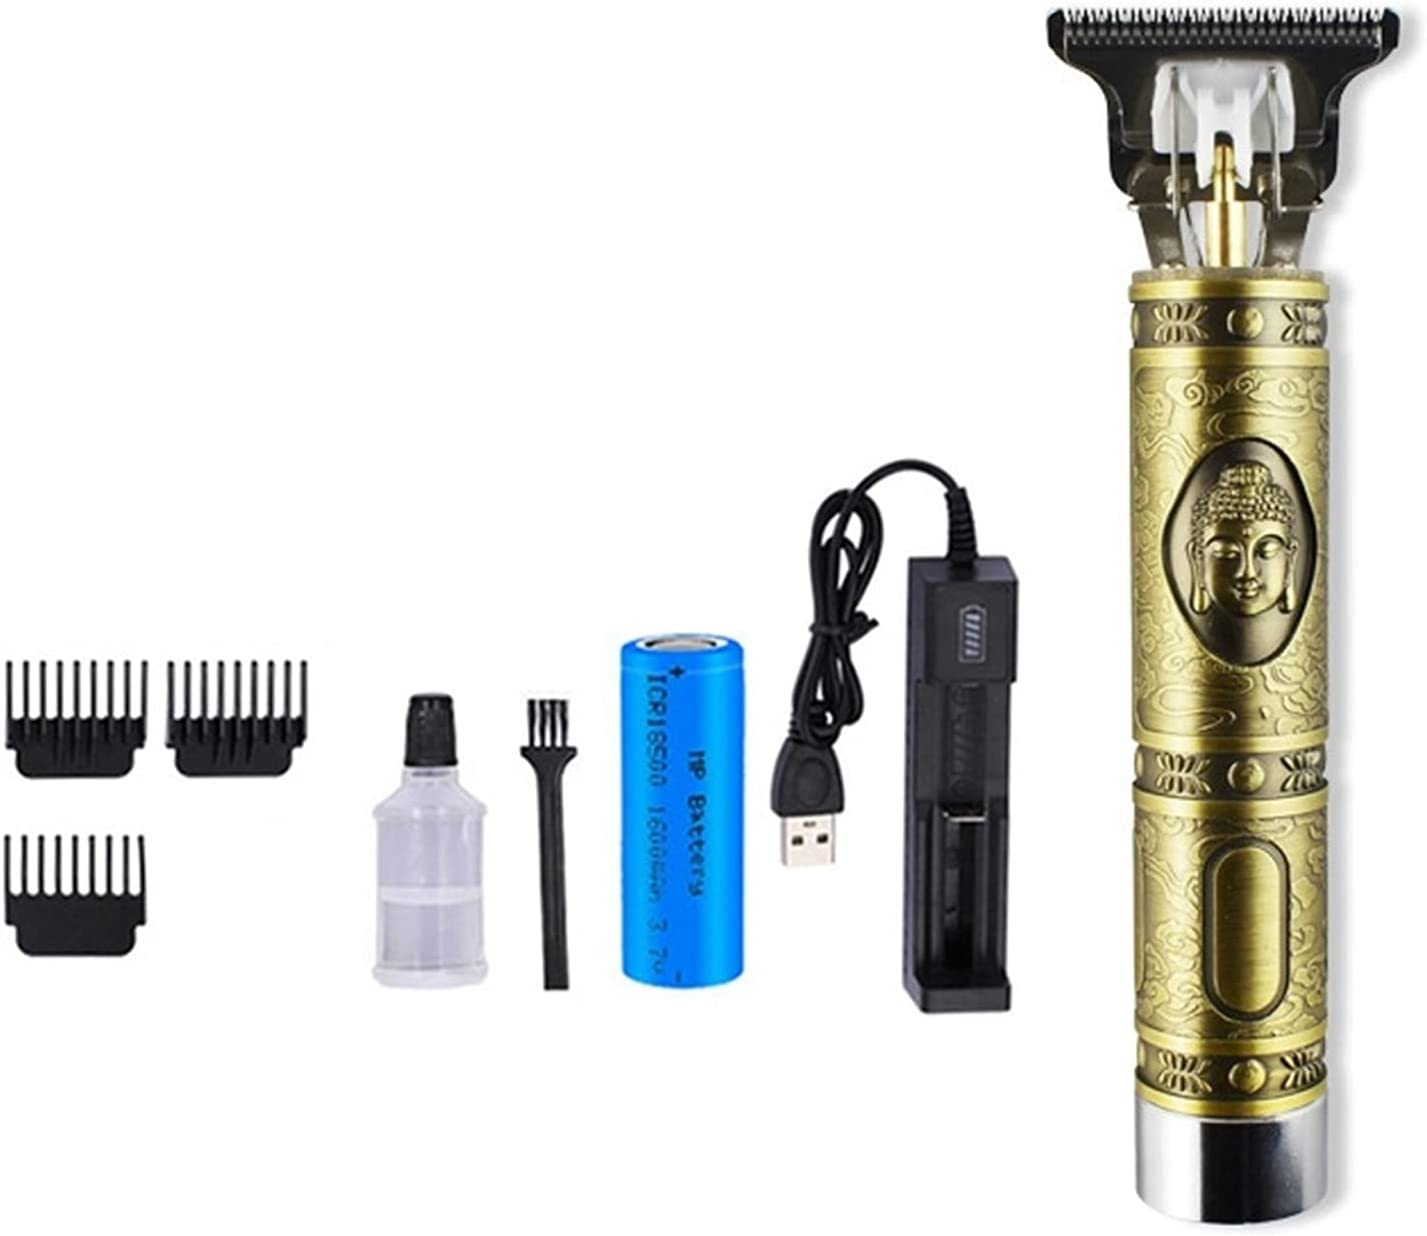 SGADSH Hair Clippers Men USB Trimmer T9 Clippe Special price for a limited time Special price Rechargeable